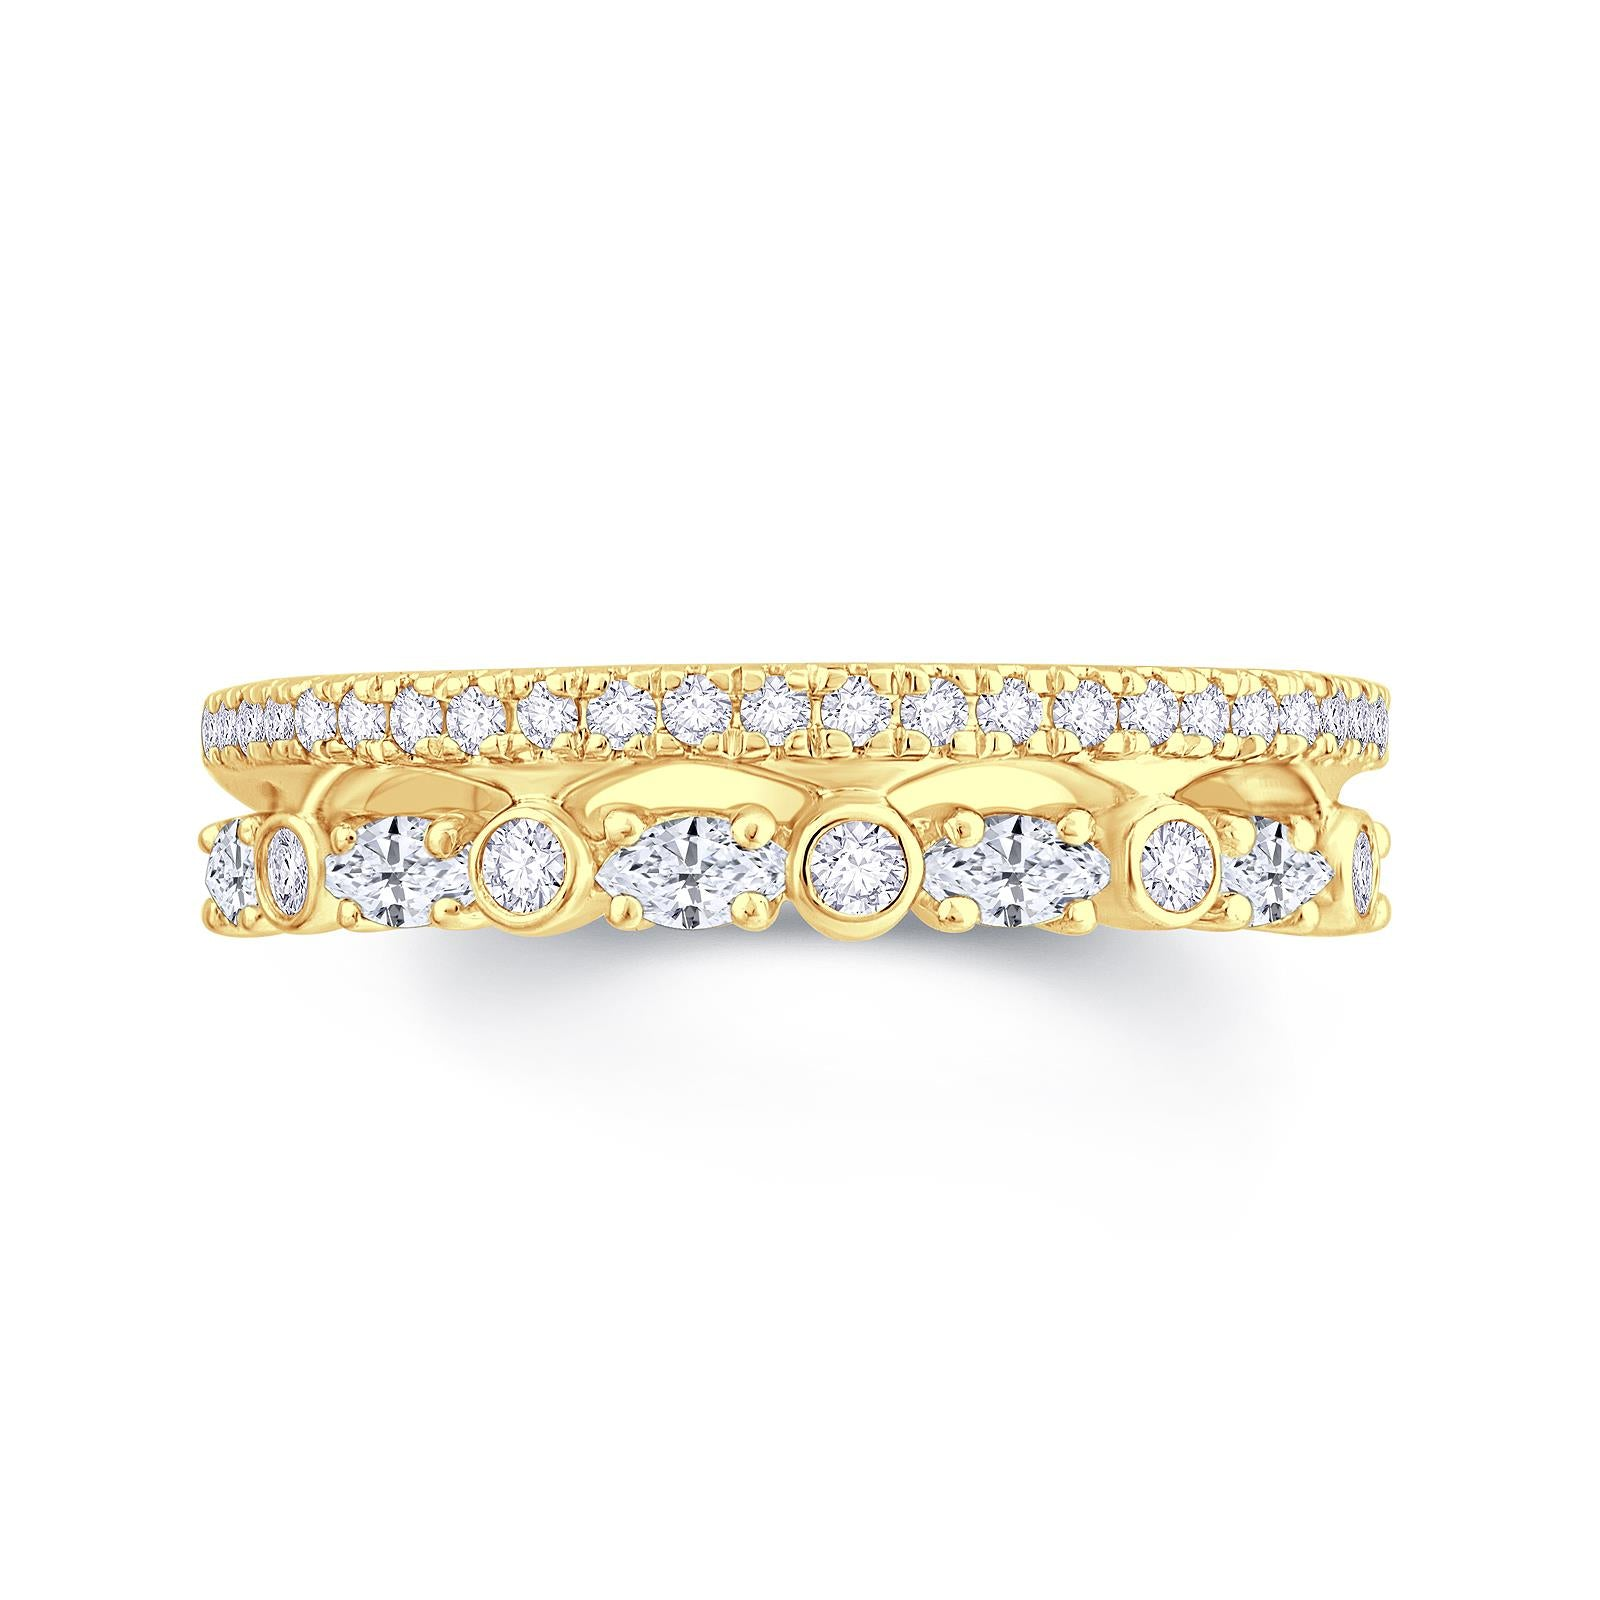 2 Row 18ct Yellow Gold Band with Round Brilliant and Marquise Diamonds.  Total Diamond Weight .70ct. 65% Spread